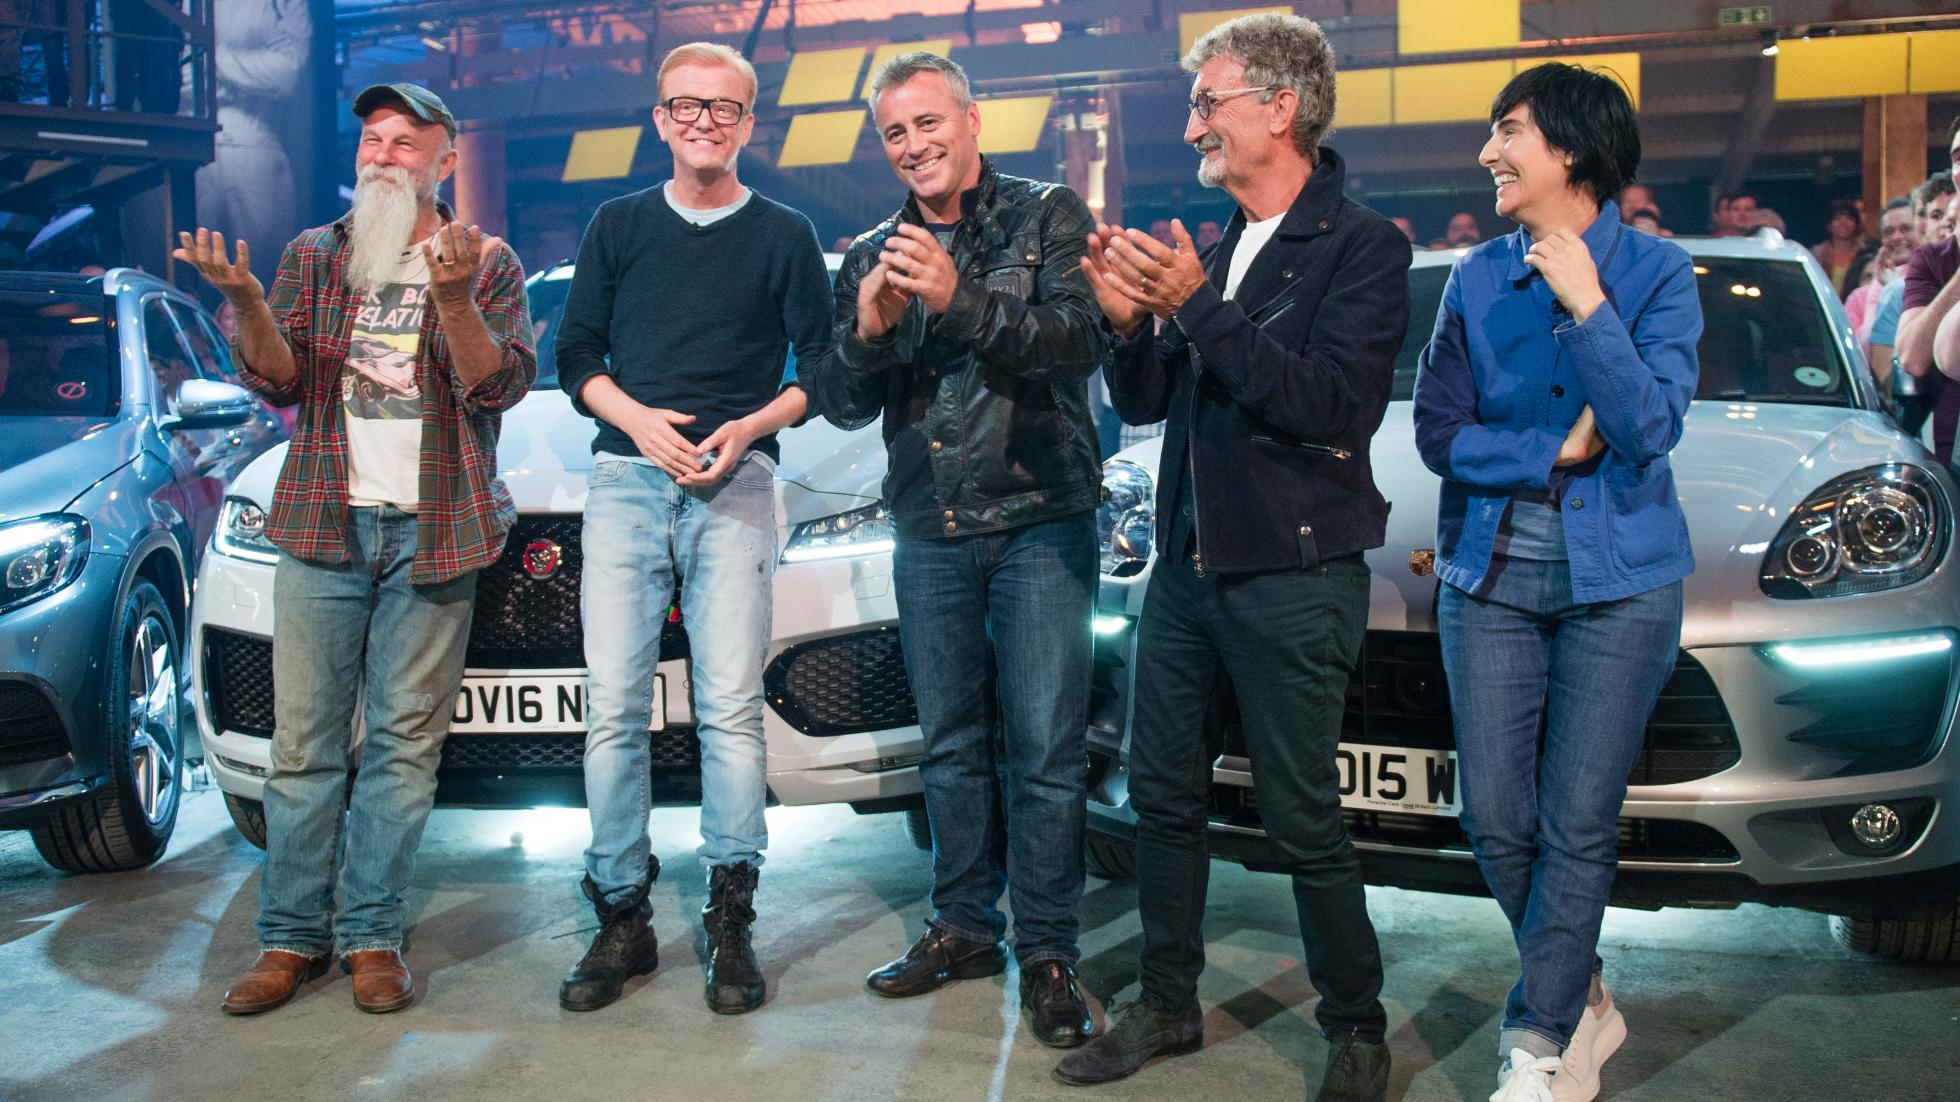 New Top Gear (season 23) Off To A Bad Start, Chris Evans